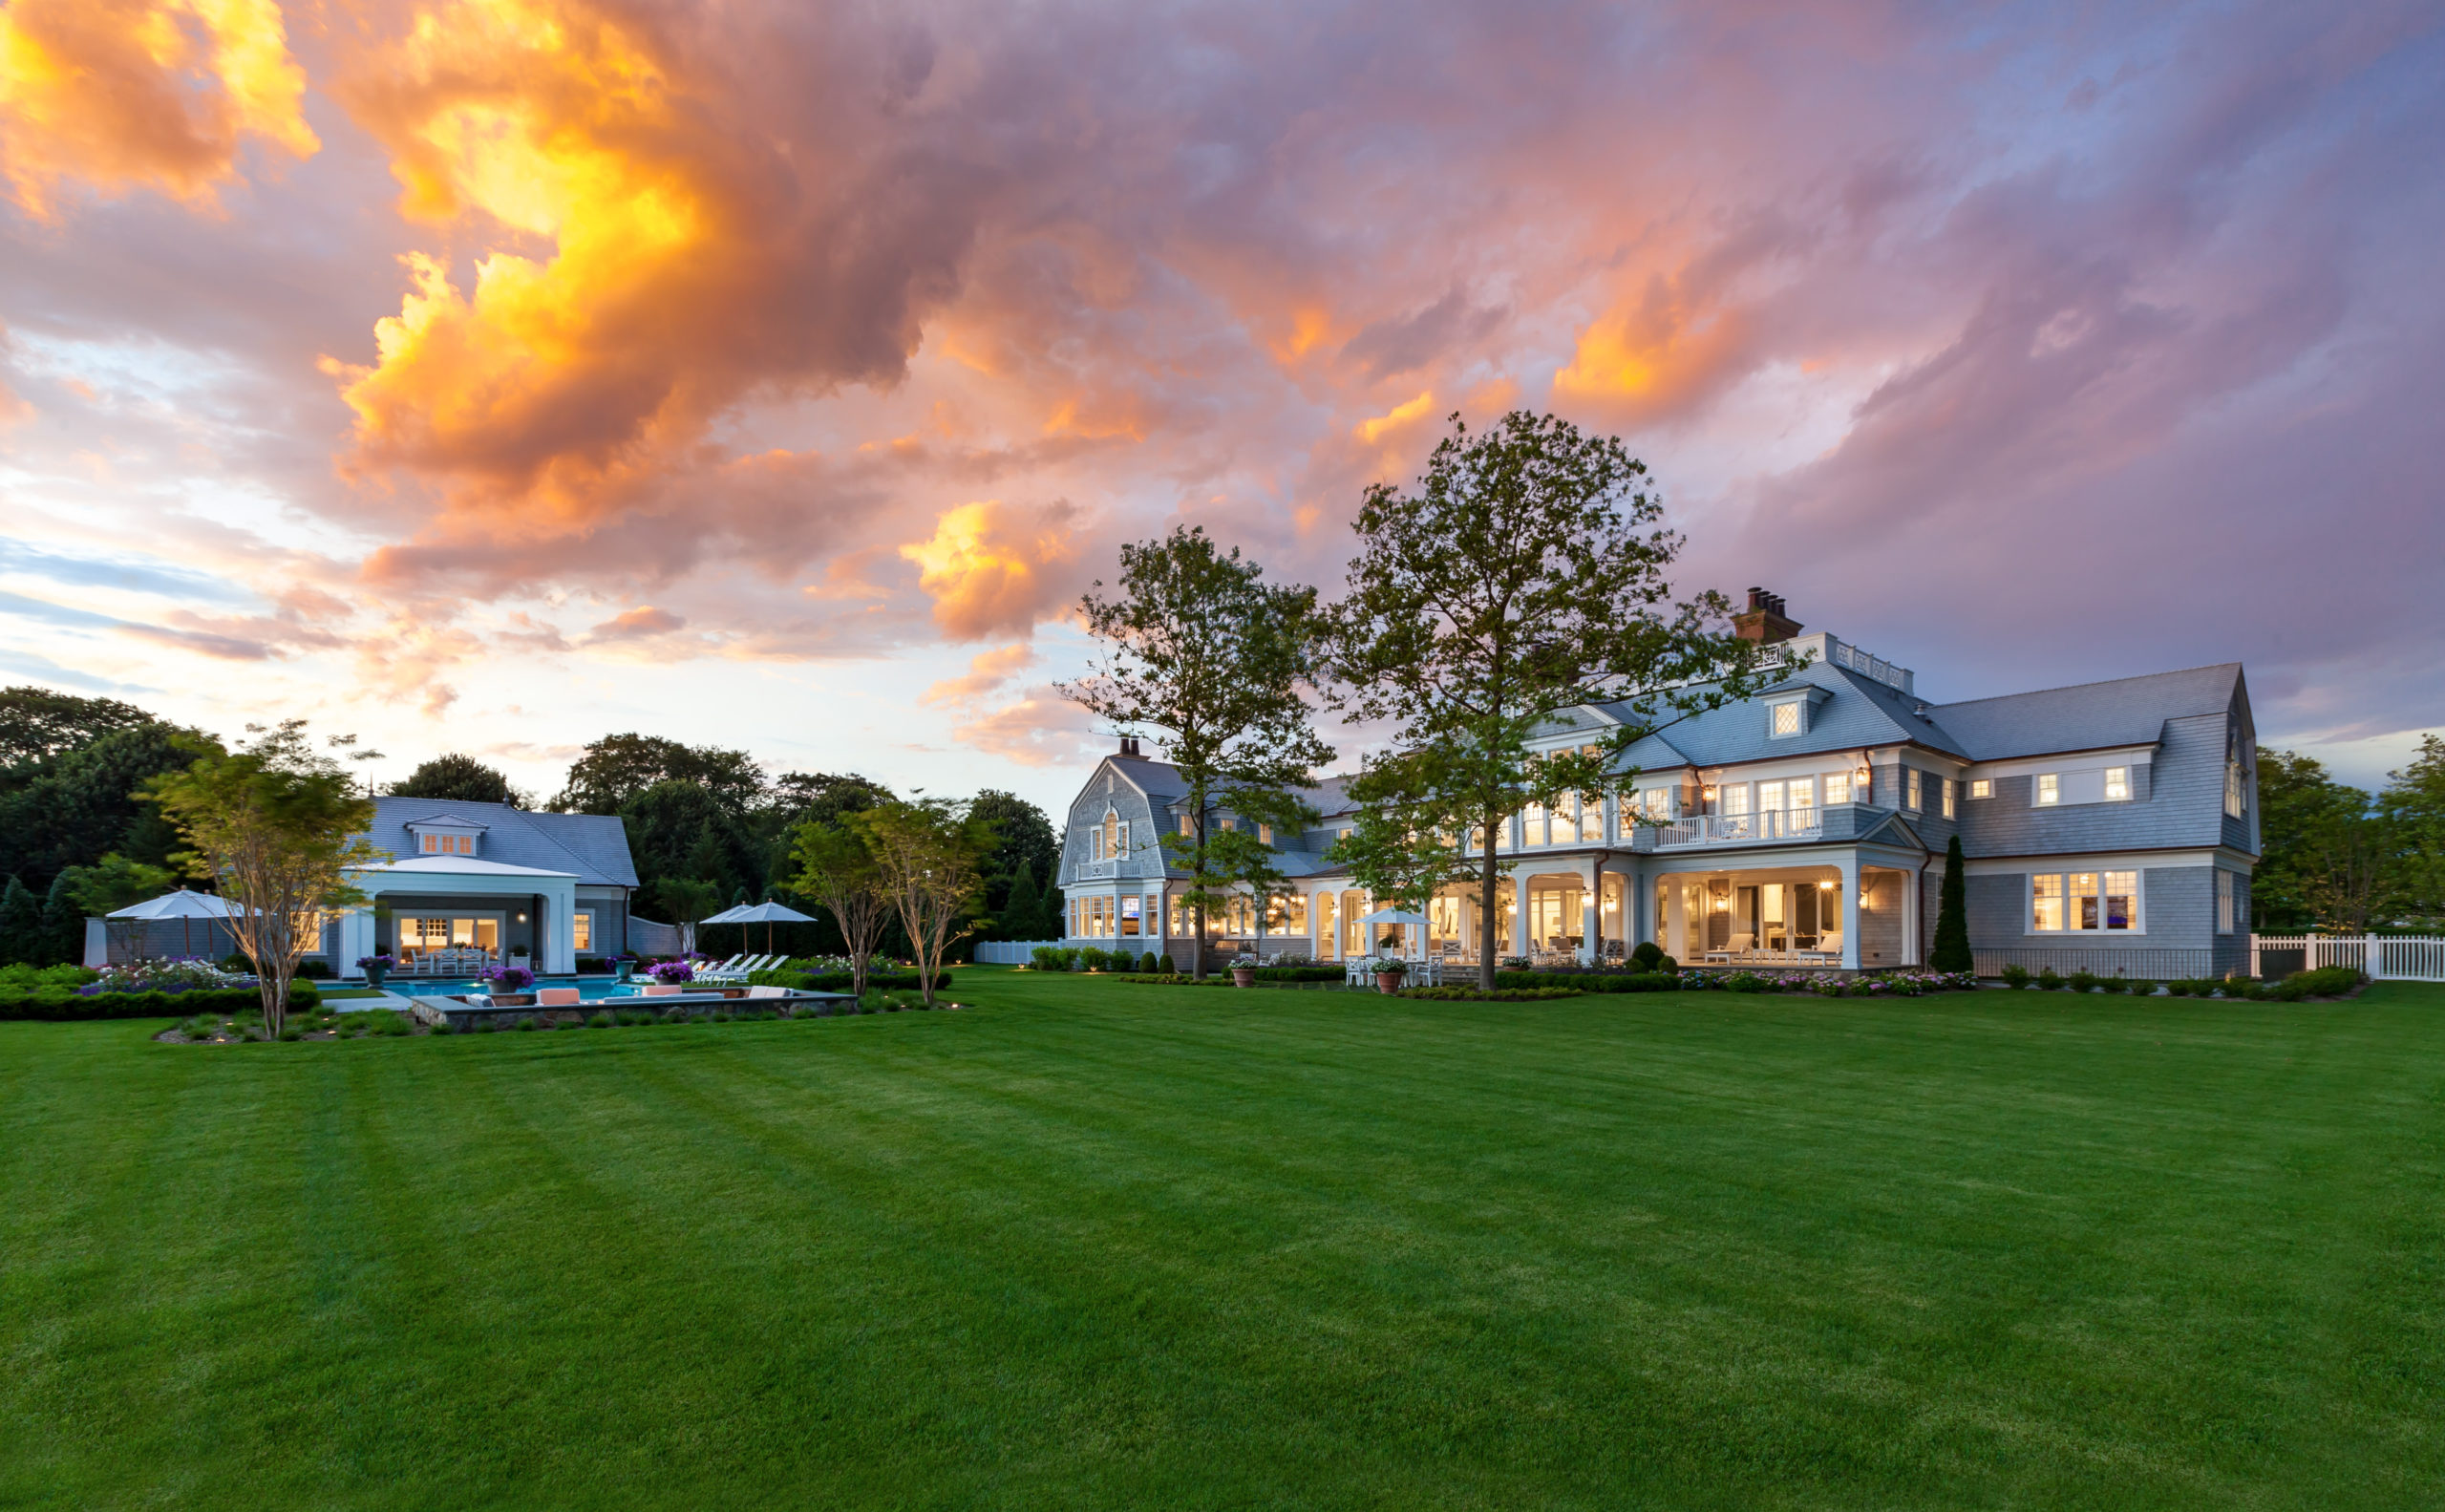 6 Olde Towne Lane, Southampton. the No. 5 Hamptons home sale of 2019.  KIM SARGENT/COURTESY THE CORCORAN GROUP